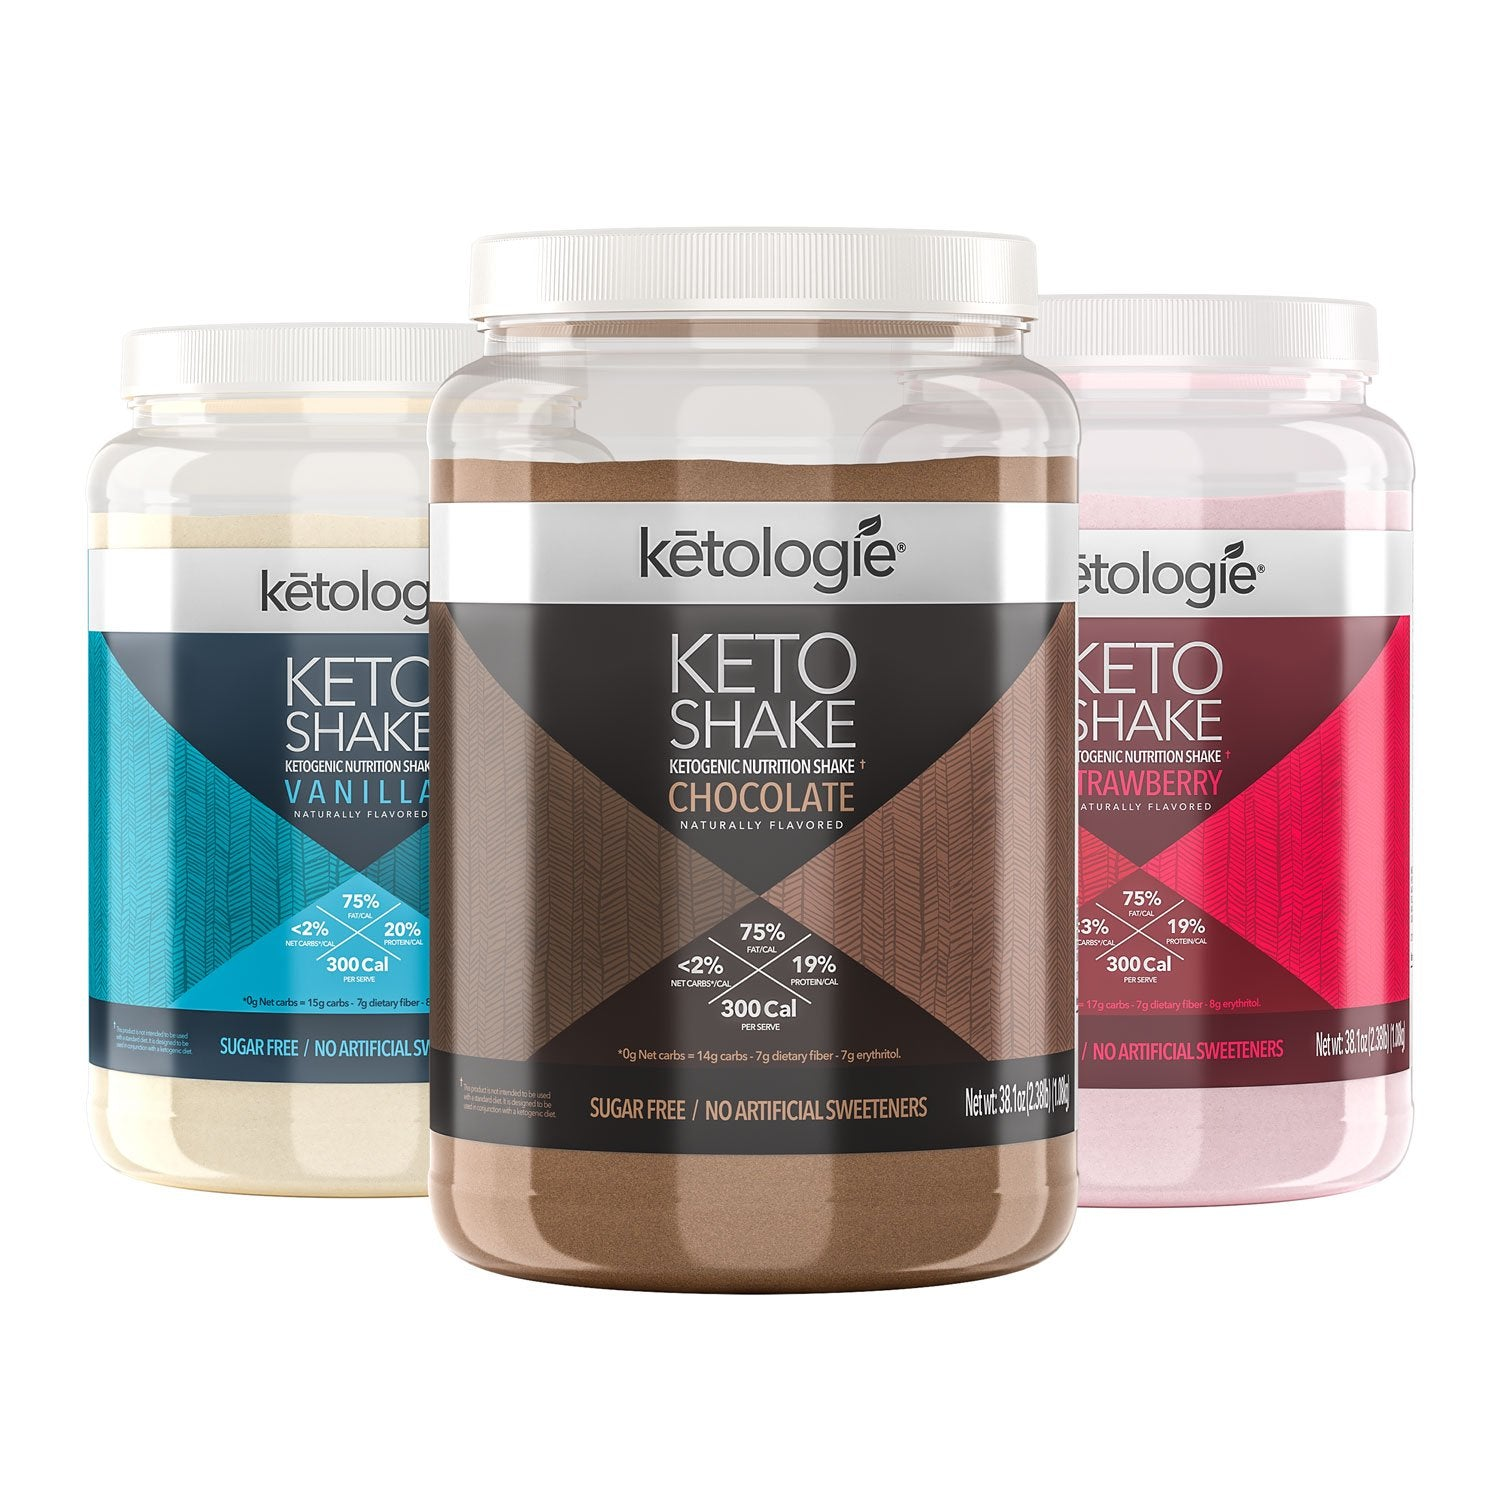 The Triple Whammy Neapolitan Pack - 3 x Keto Shakes (LIMITED TIME OFFER)